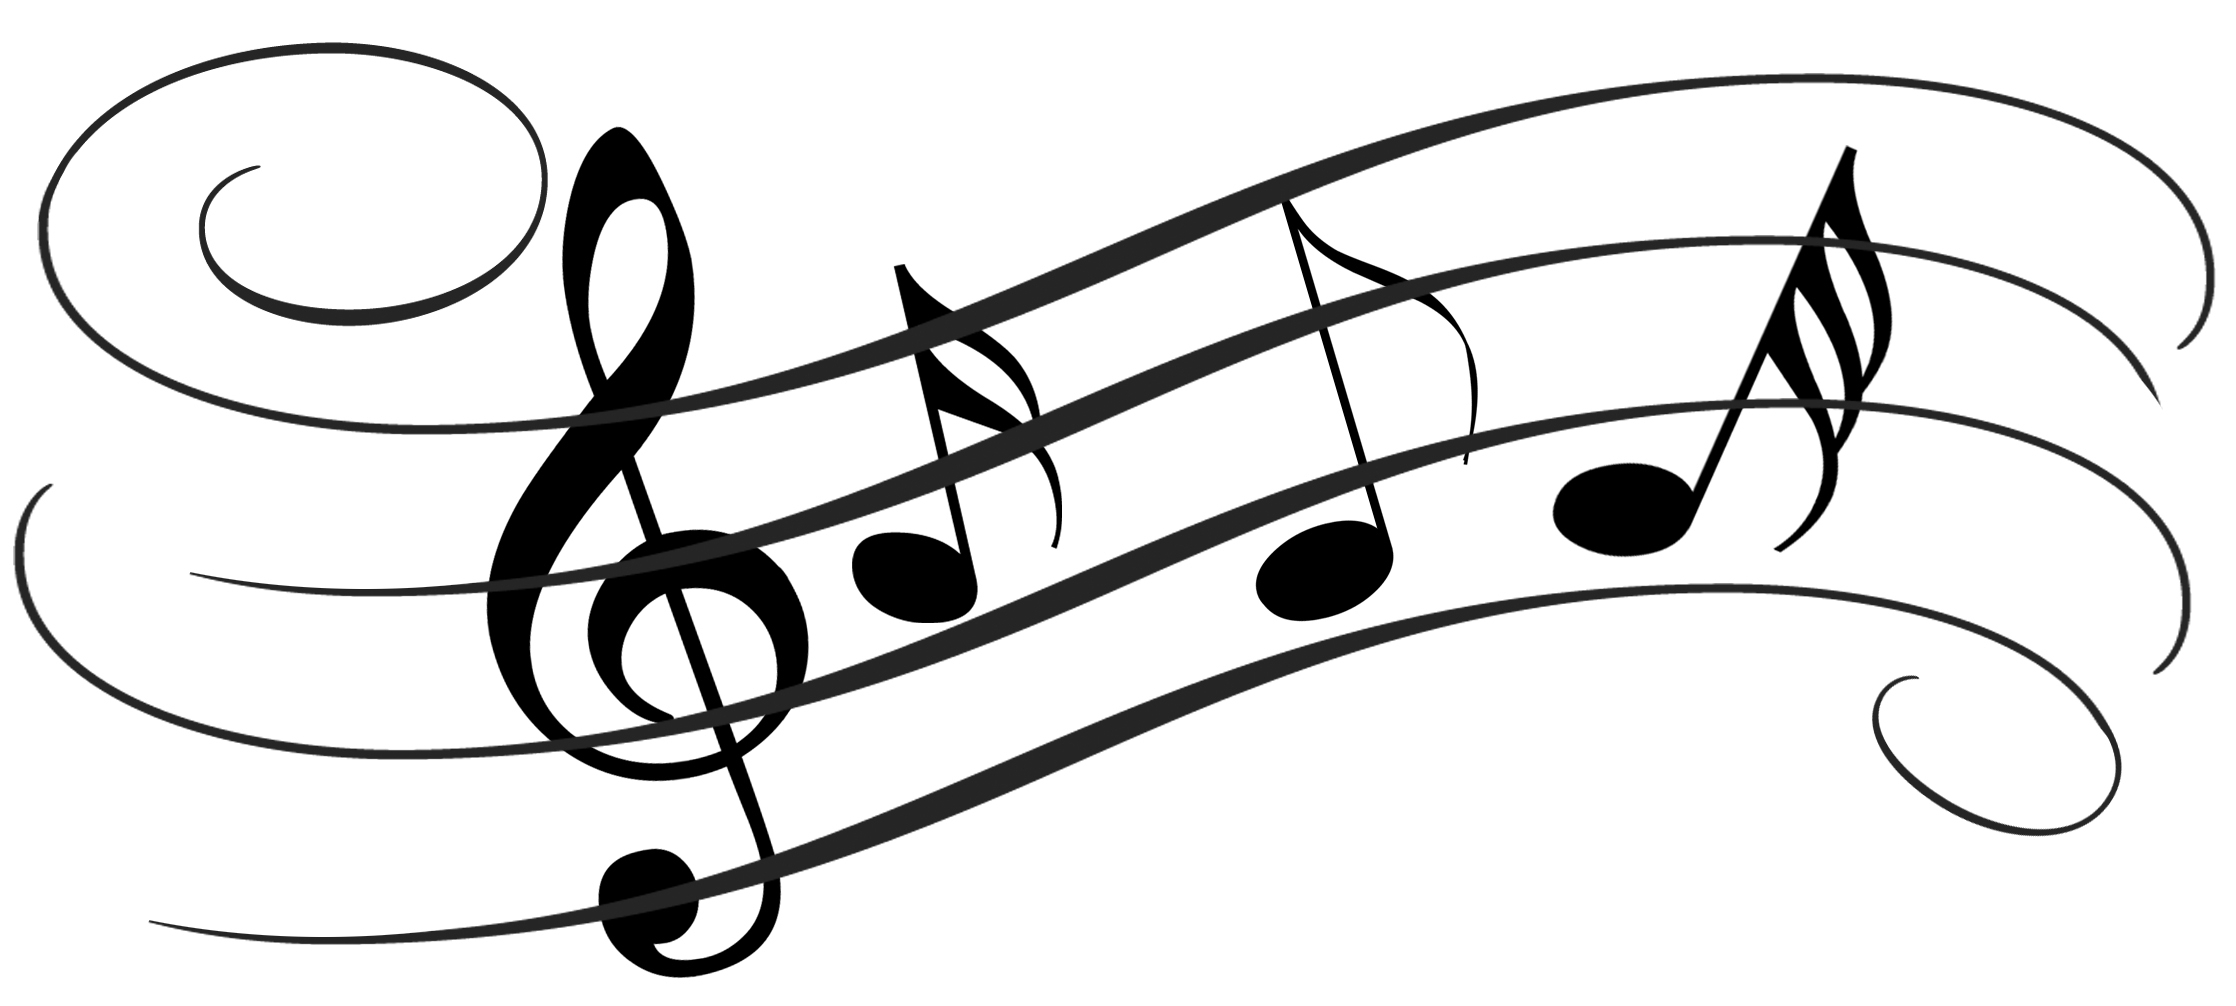 2236x1006 Drawings Of Music Notes